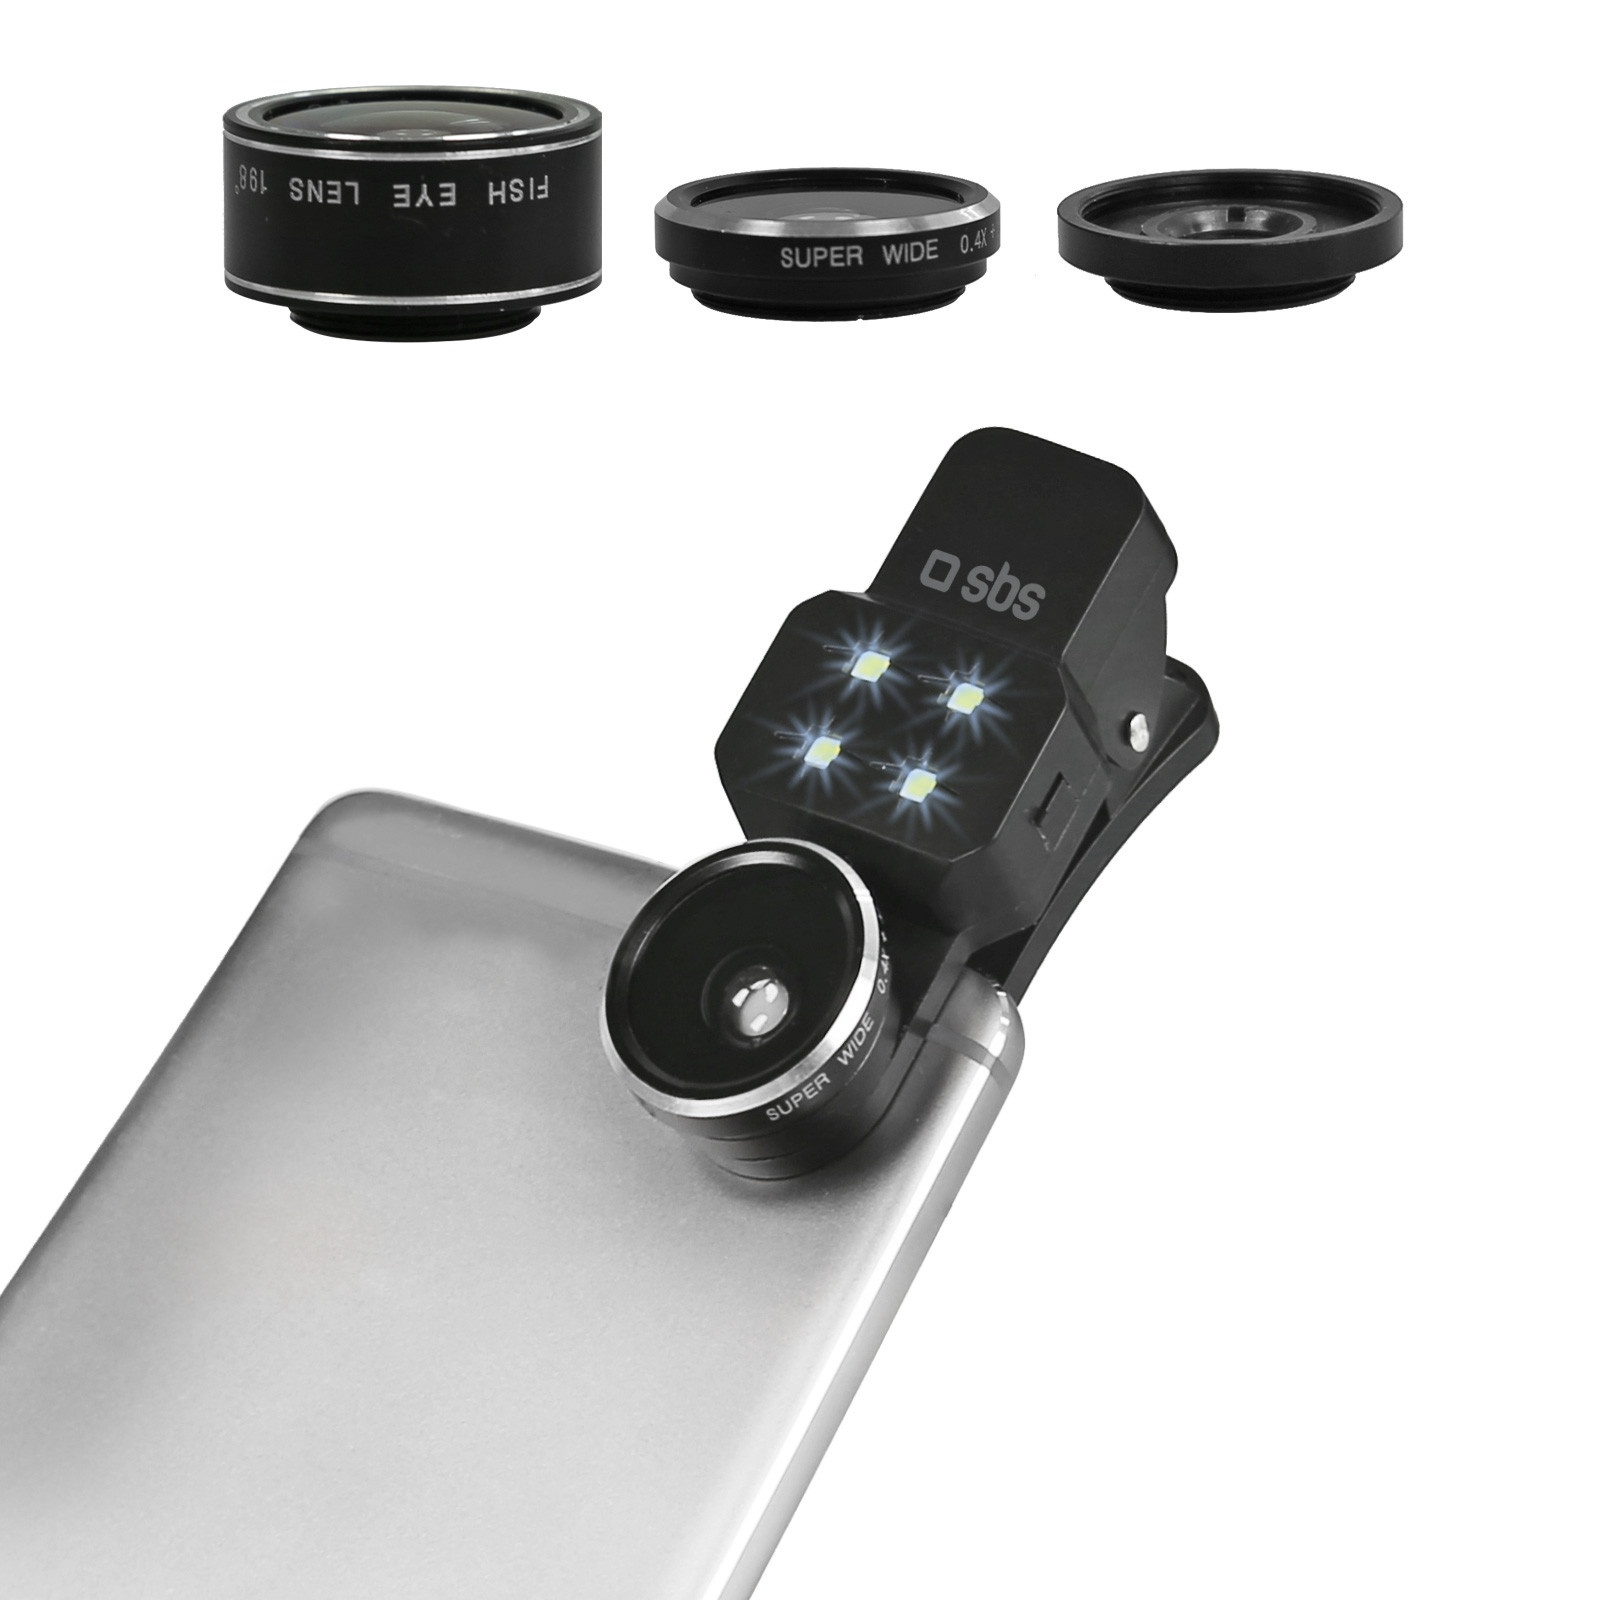 SBS Lens Kit 3 in 1 universal for Smartphone with single camera (Fish Eye, Macro, Wild Angle)